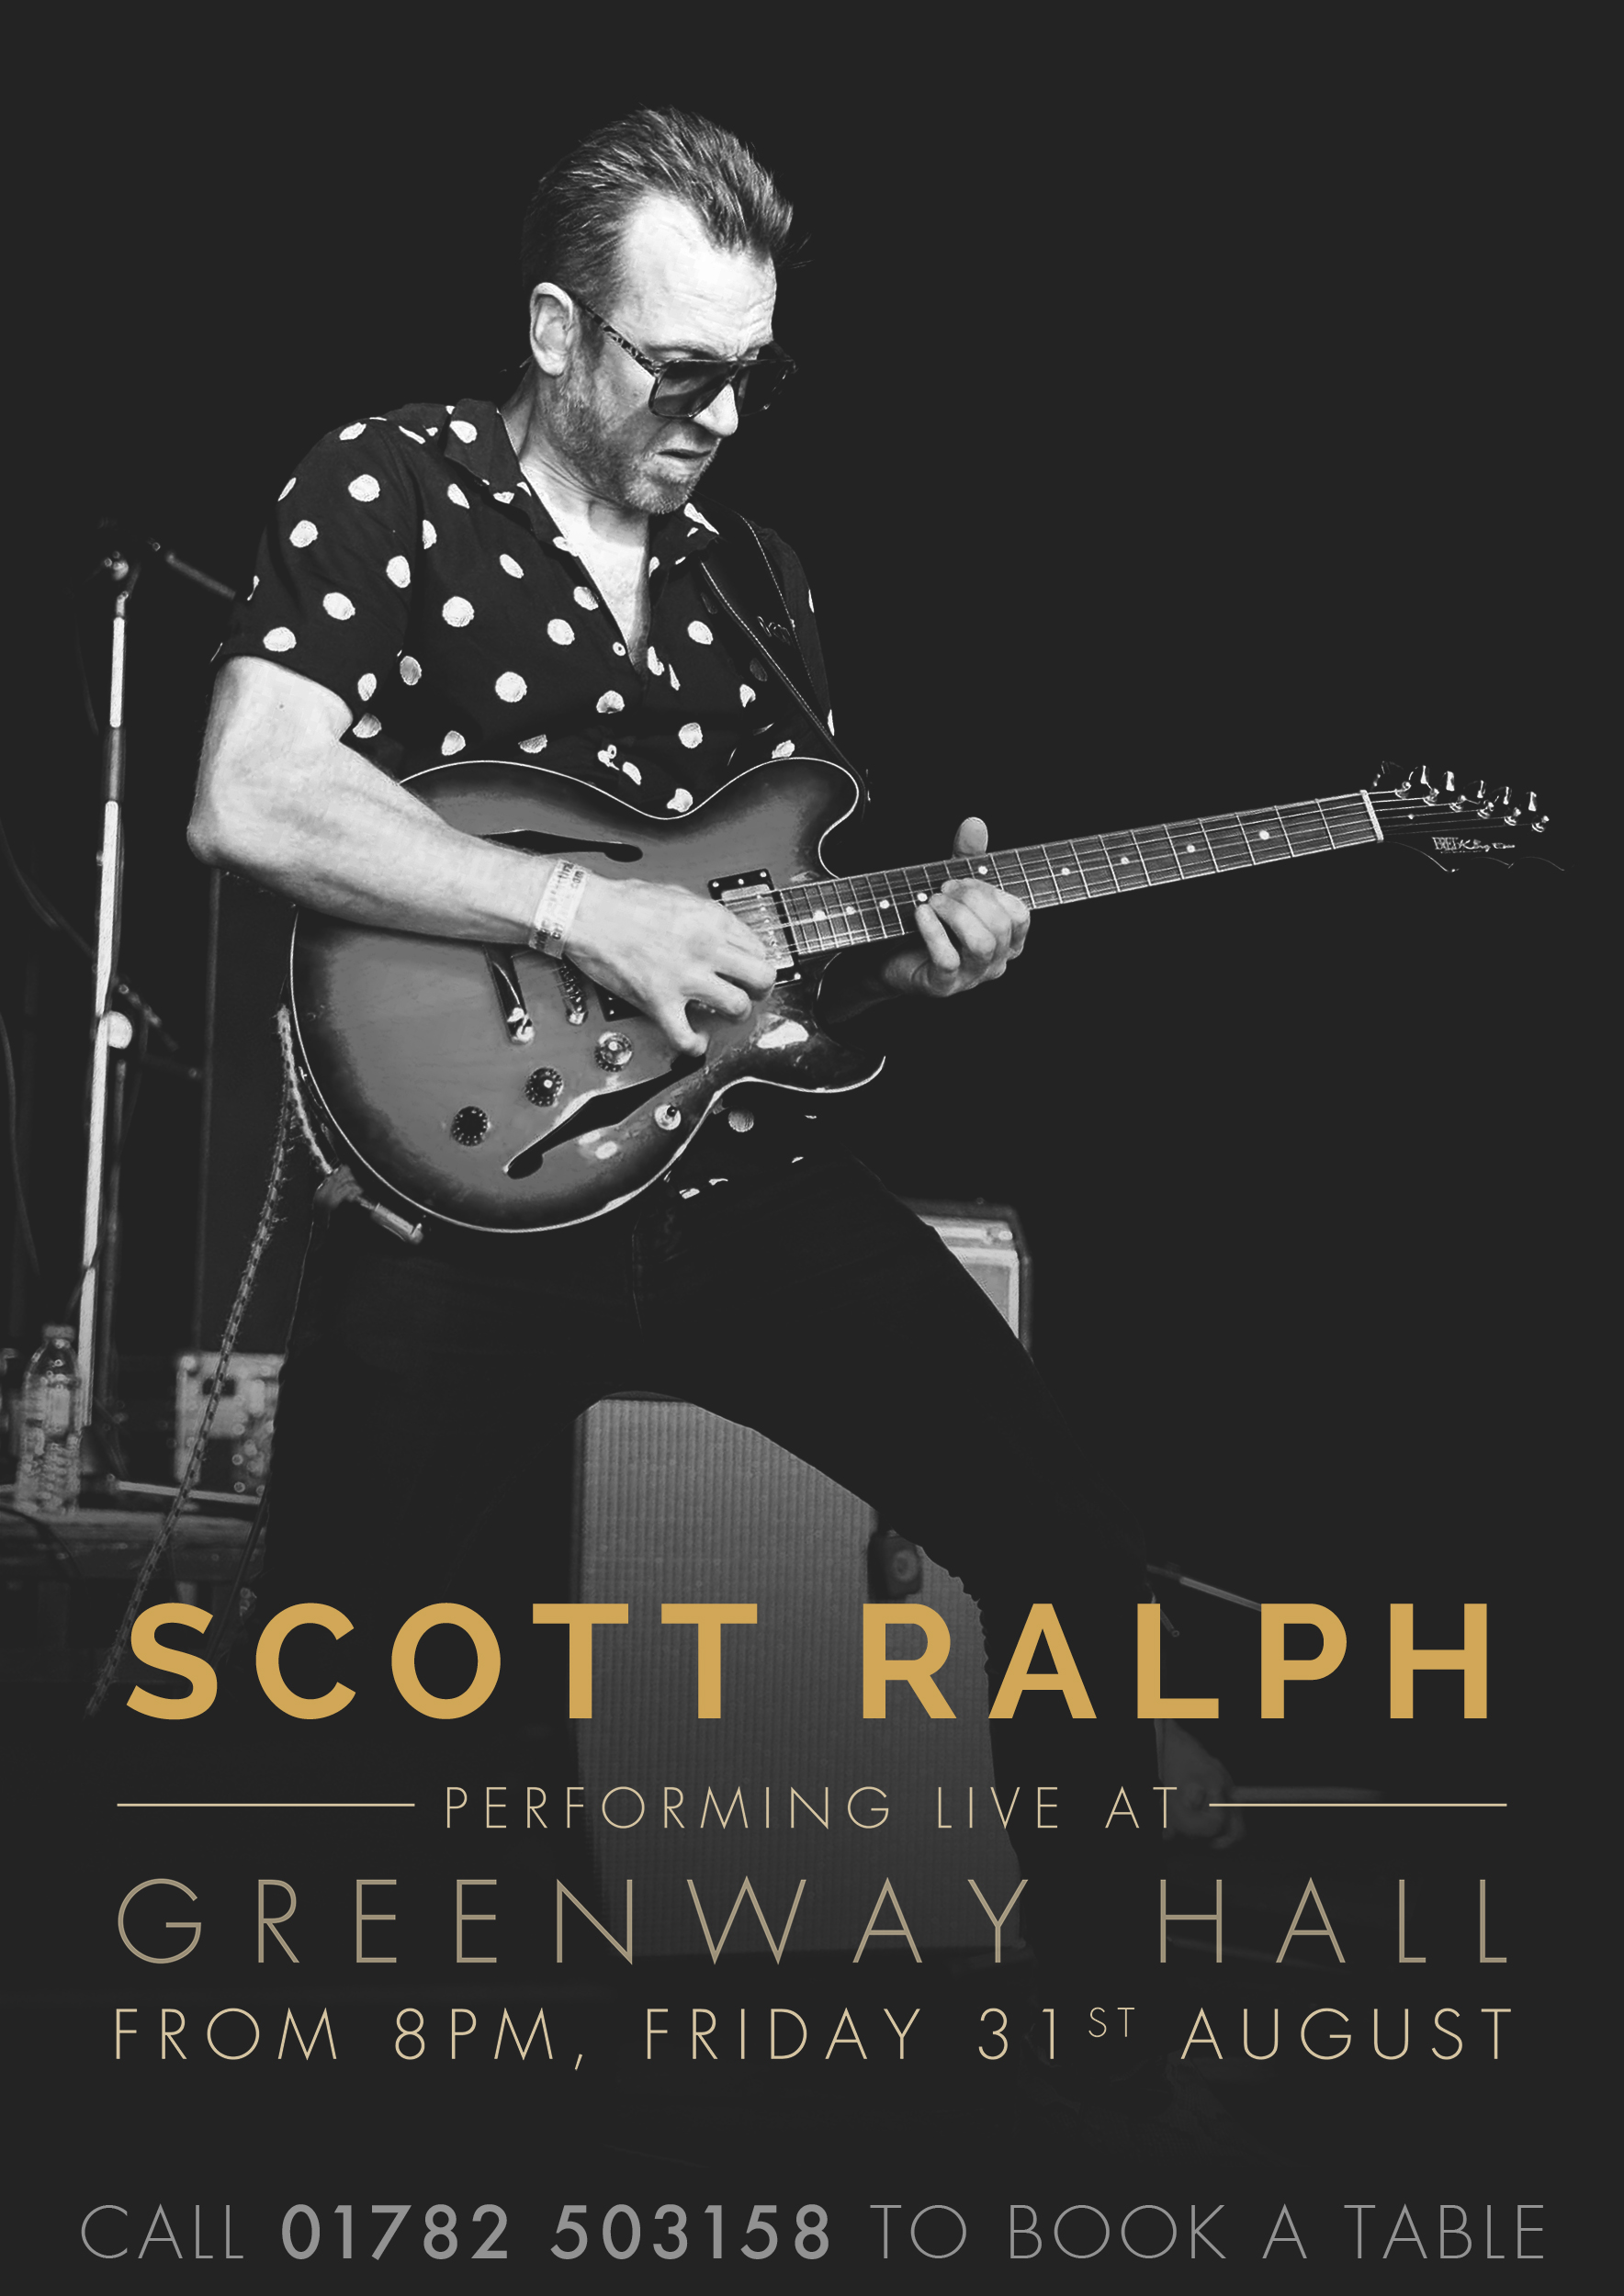 Book a table to come and see Scott Ralph perform live at Greenway Hall on the 31st August